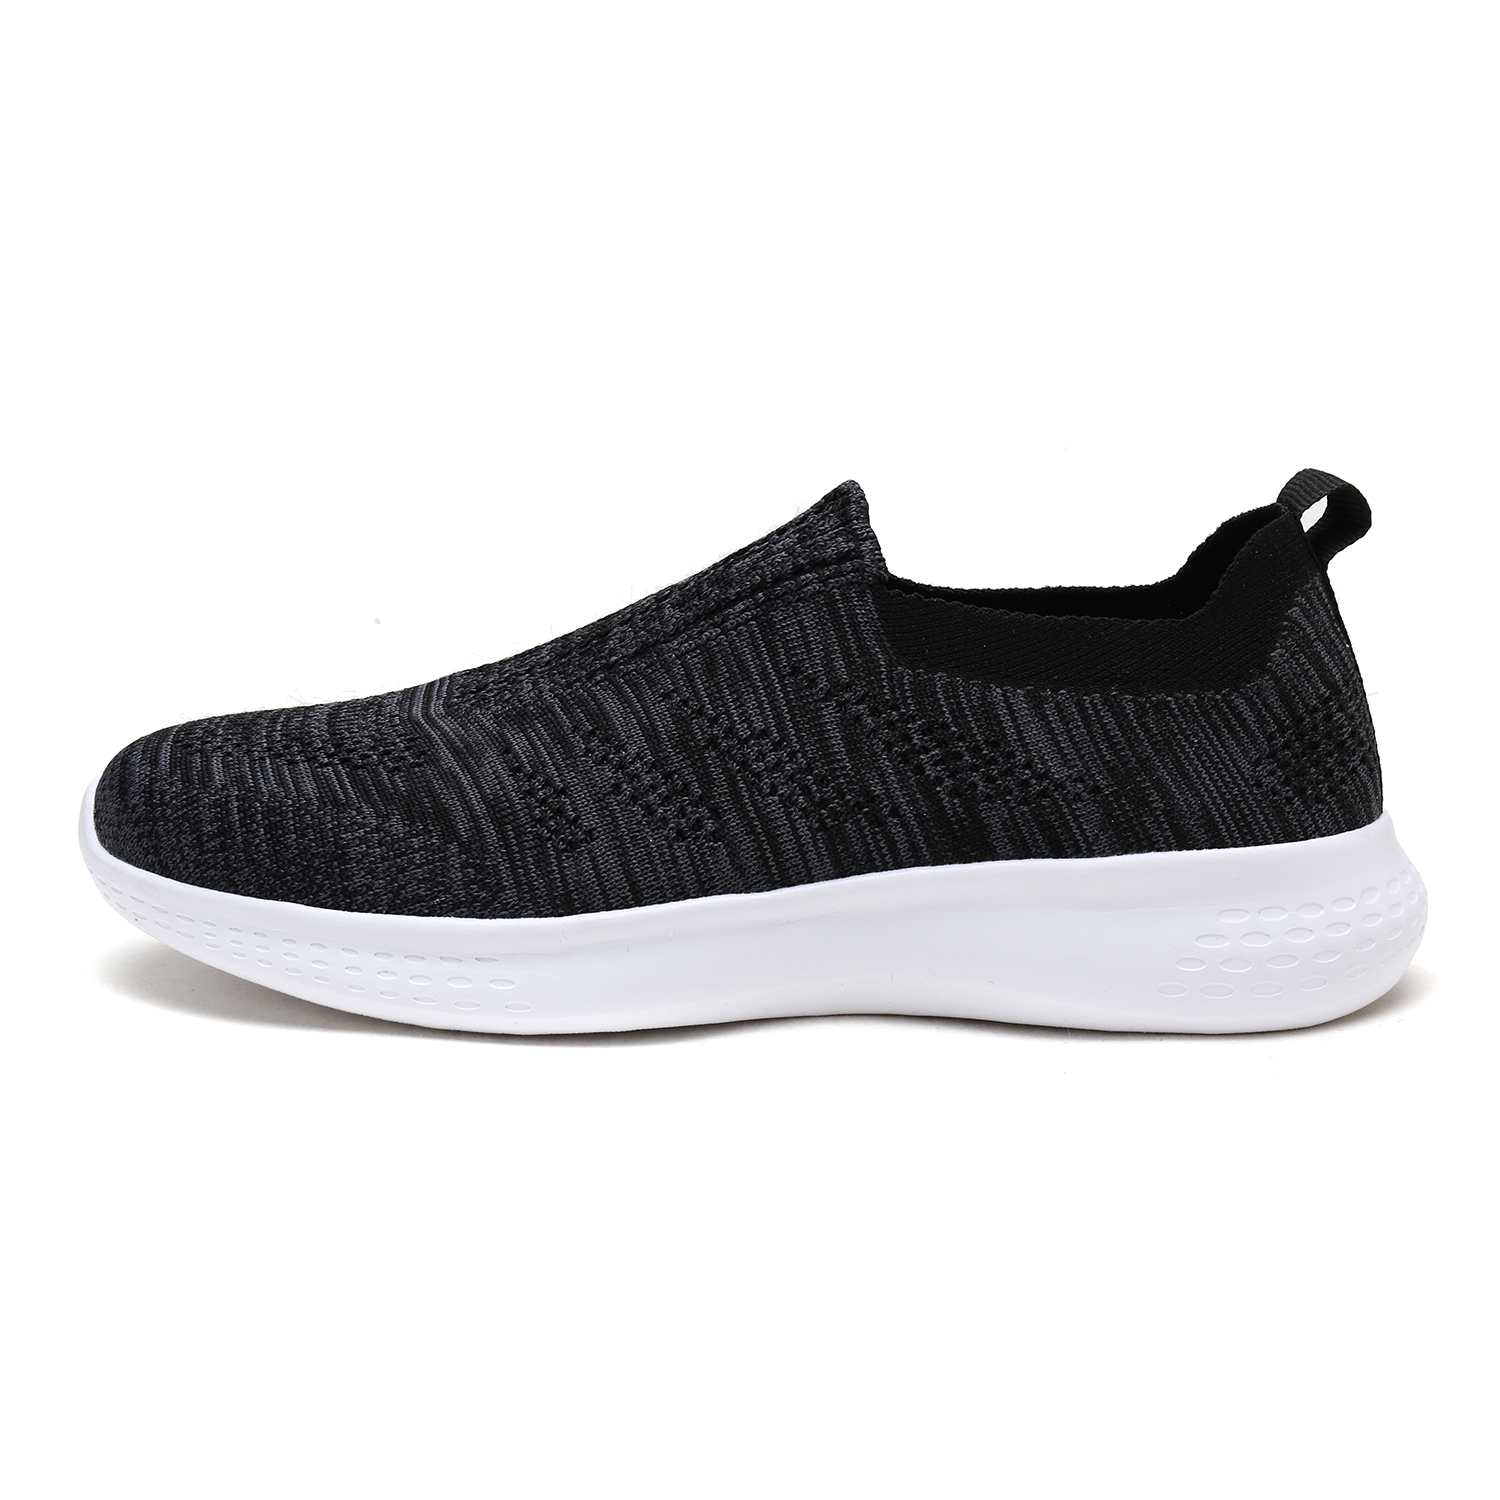 DREAM PAIRS Mens 171114-M Light Running Athletic  Sneakers Sports Walking Shoes